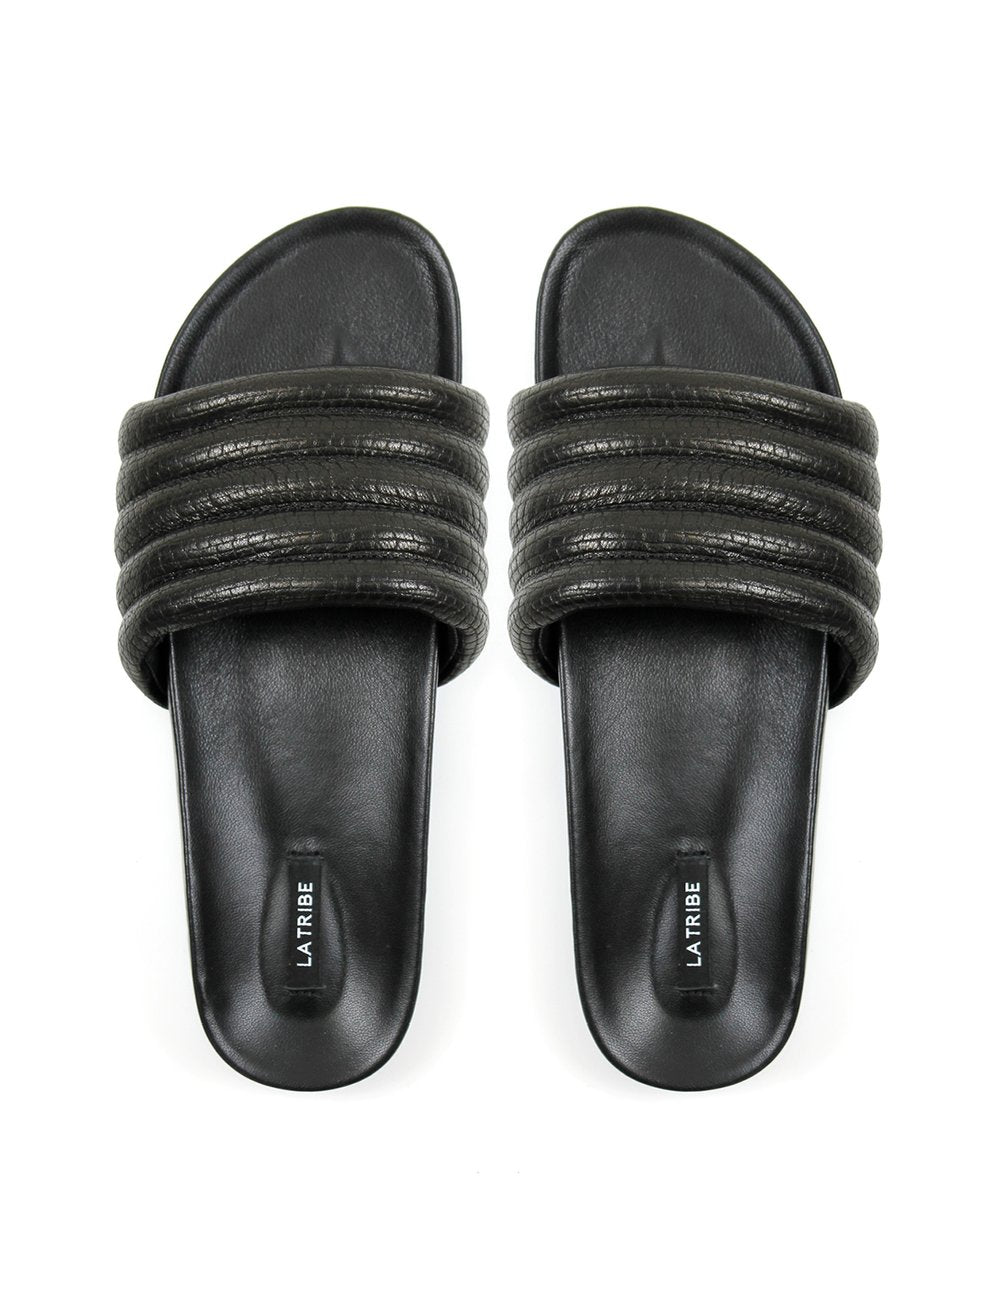 La Tribe Pool Slides Snake Black